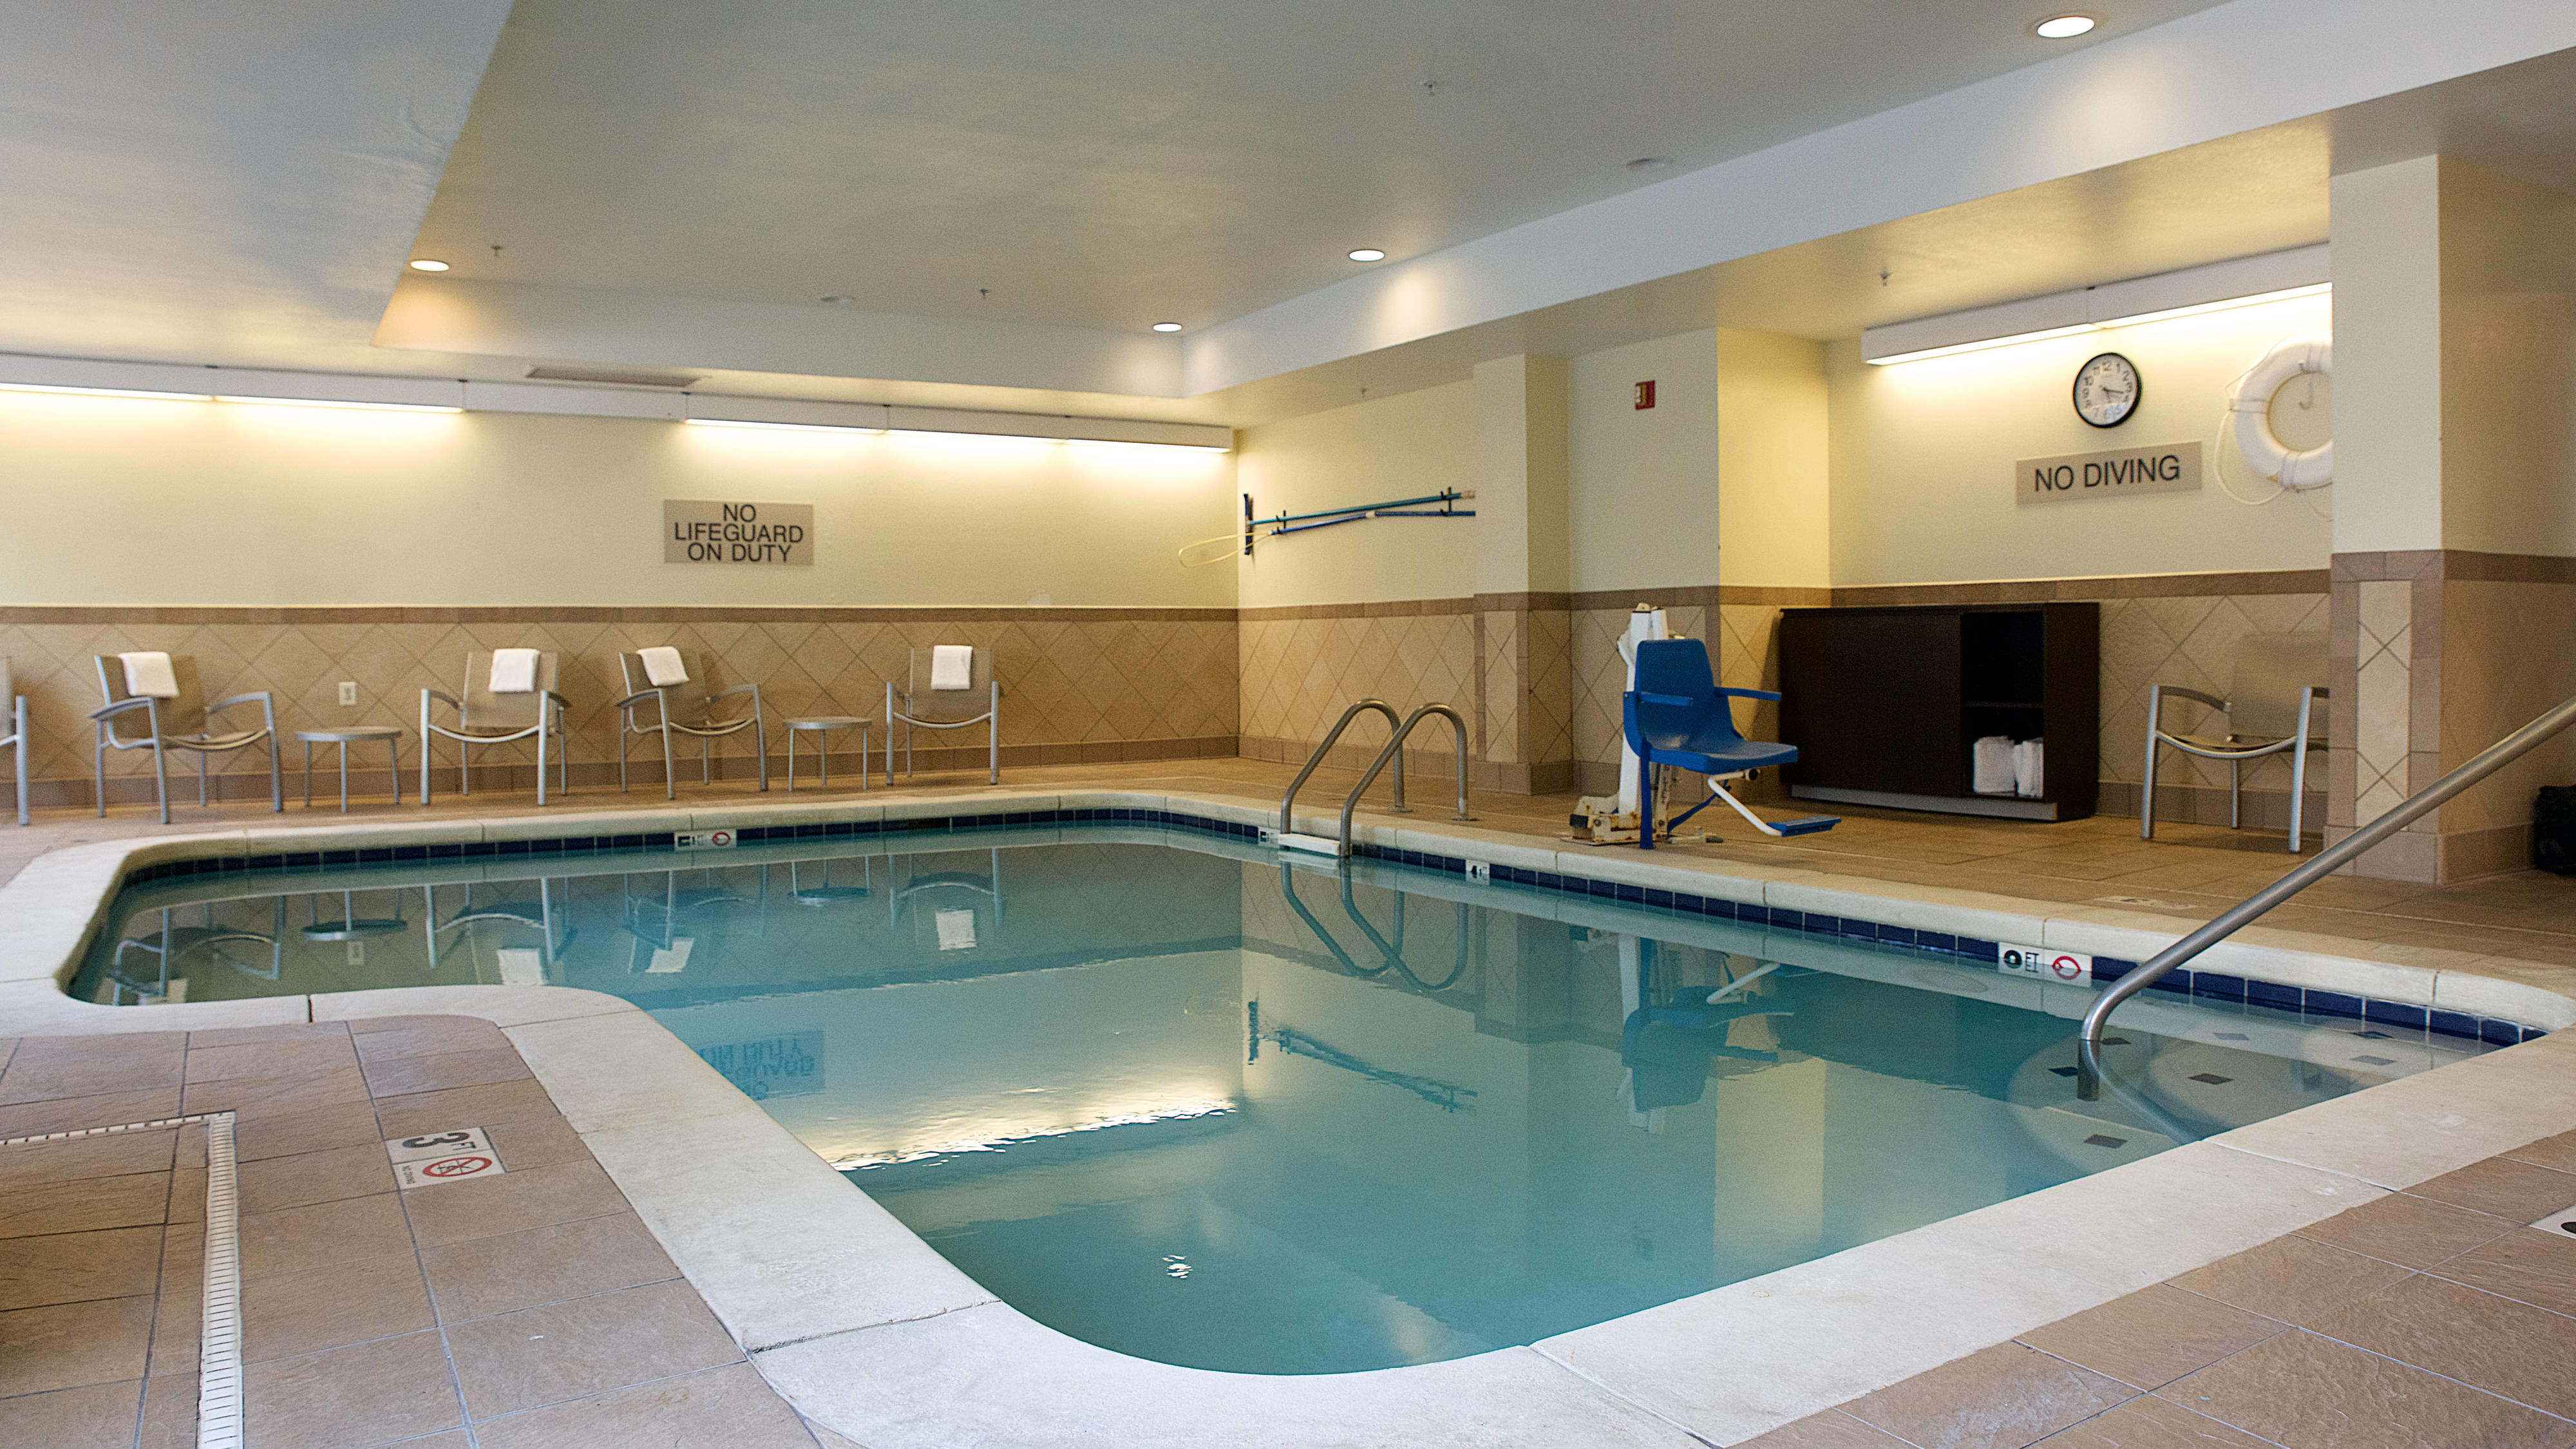 SpringHill Suites by Marriott Baton Rouge South image 13